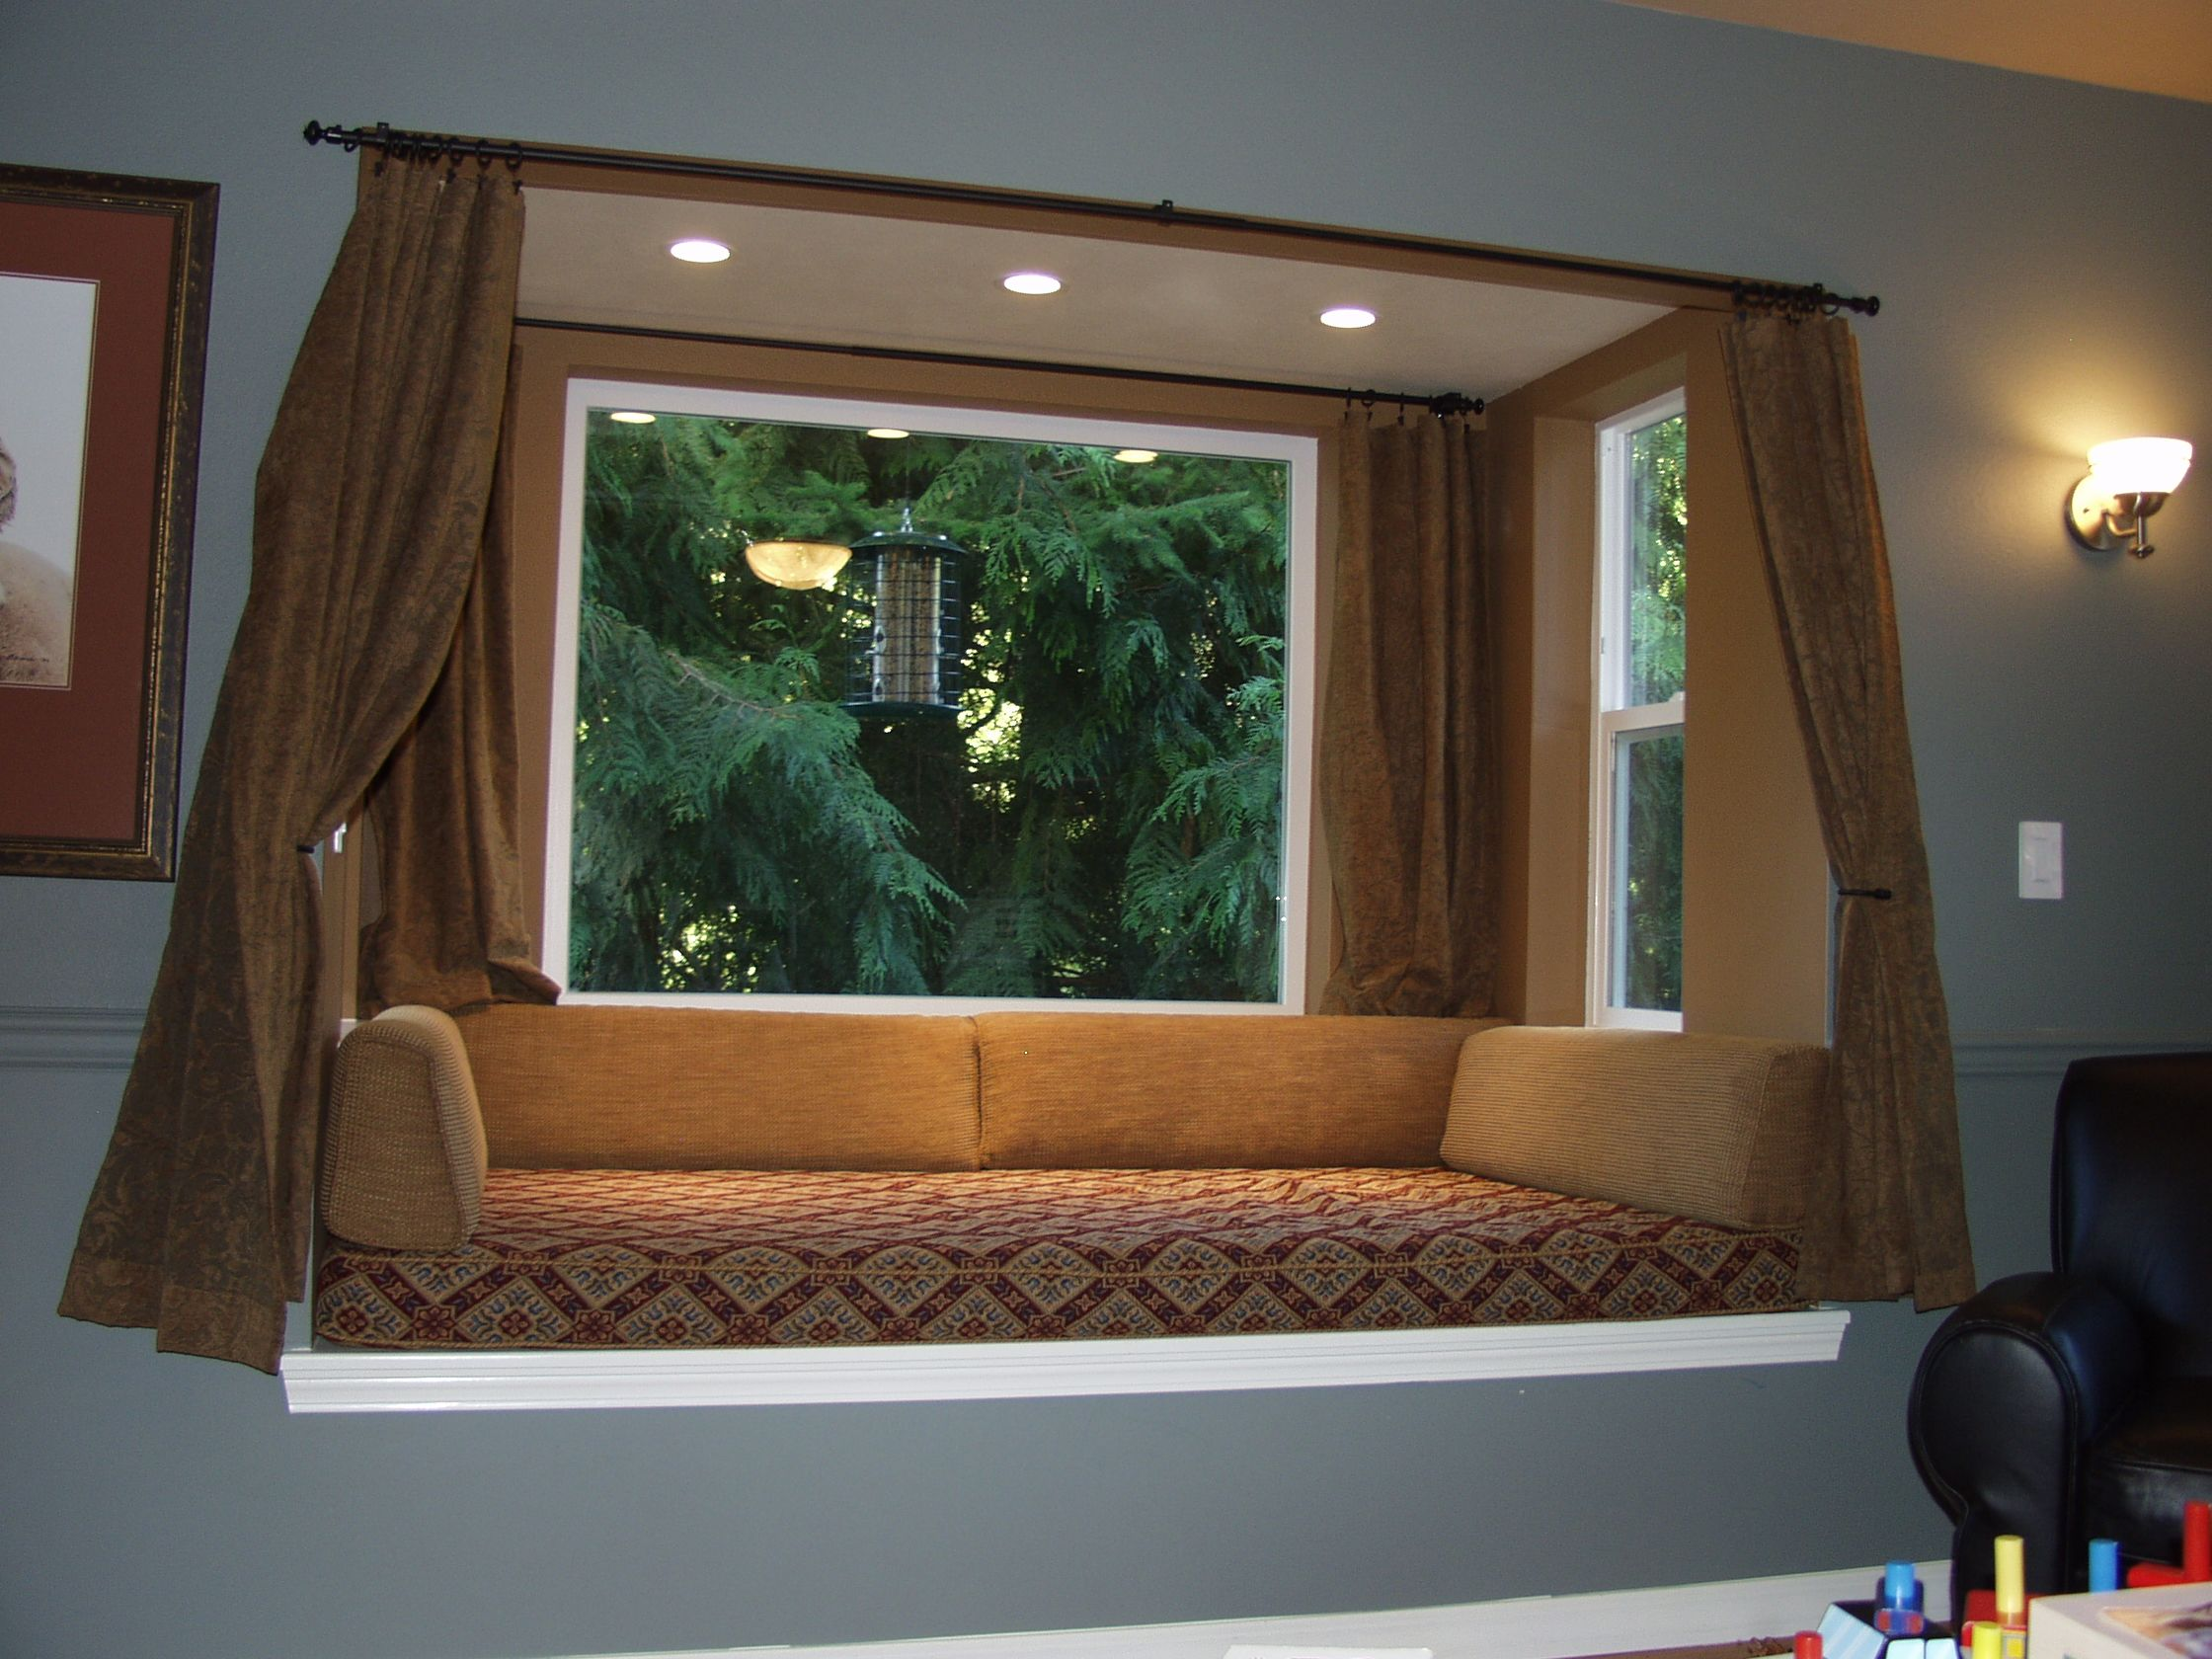 Modern window house design  great reading nook  for the home  pinterest  window reading